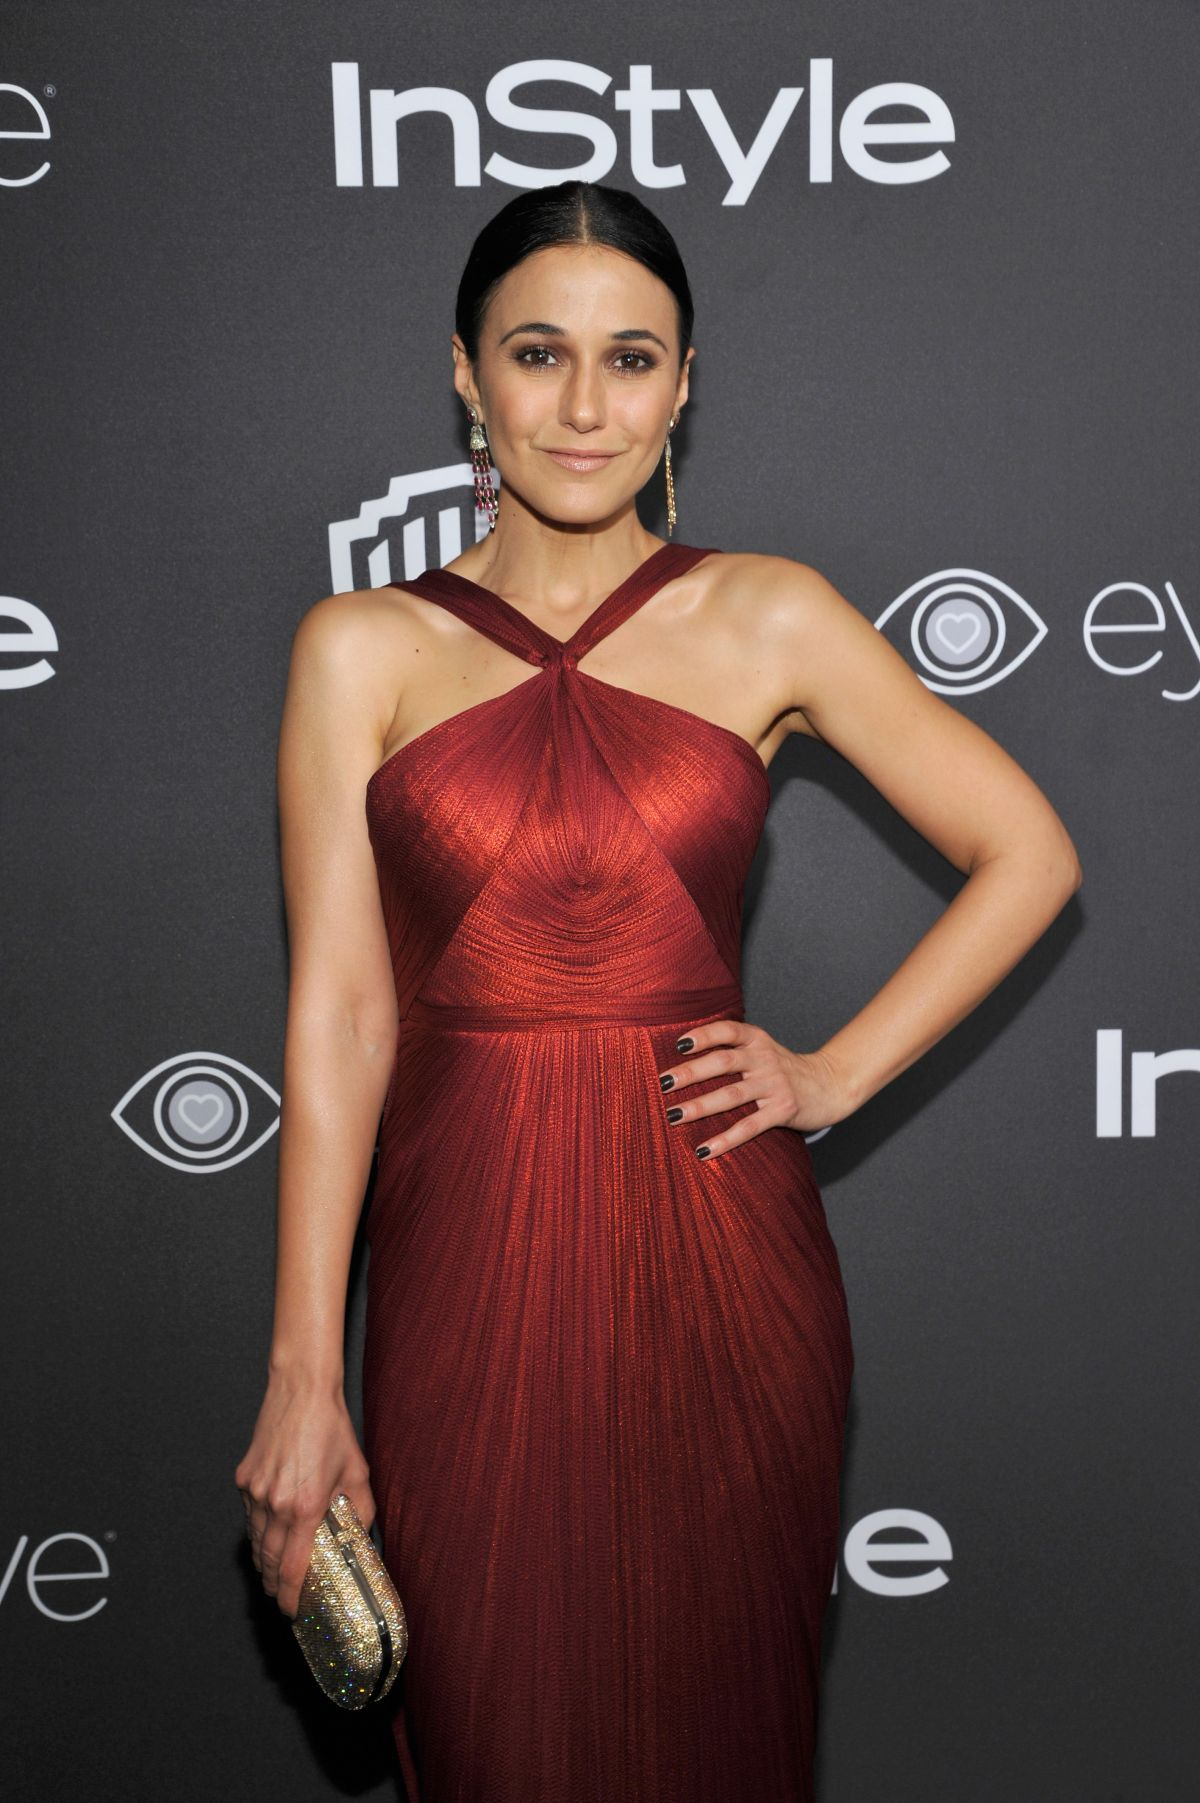 EMMANUELLE CHRIQUI at Warner Bros. Pictures & Instyle's 18th Annual Golden Globes Party in Beverly Hills 01/08/2017